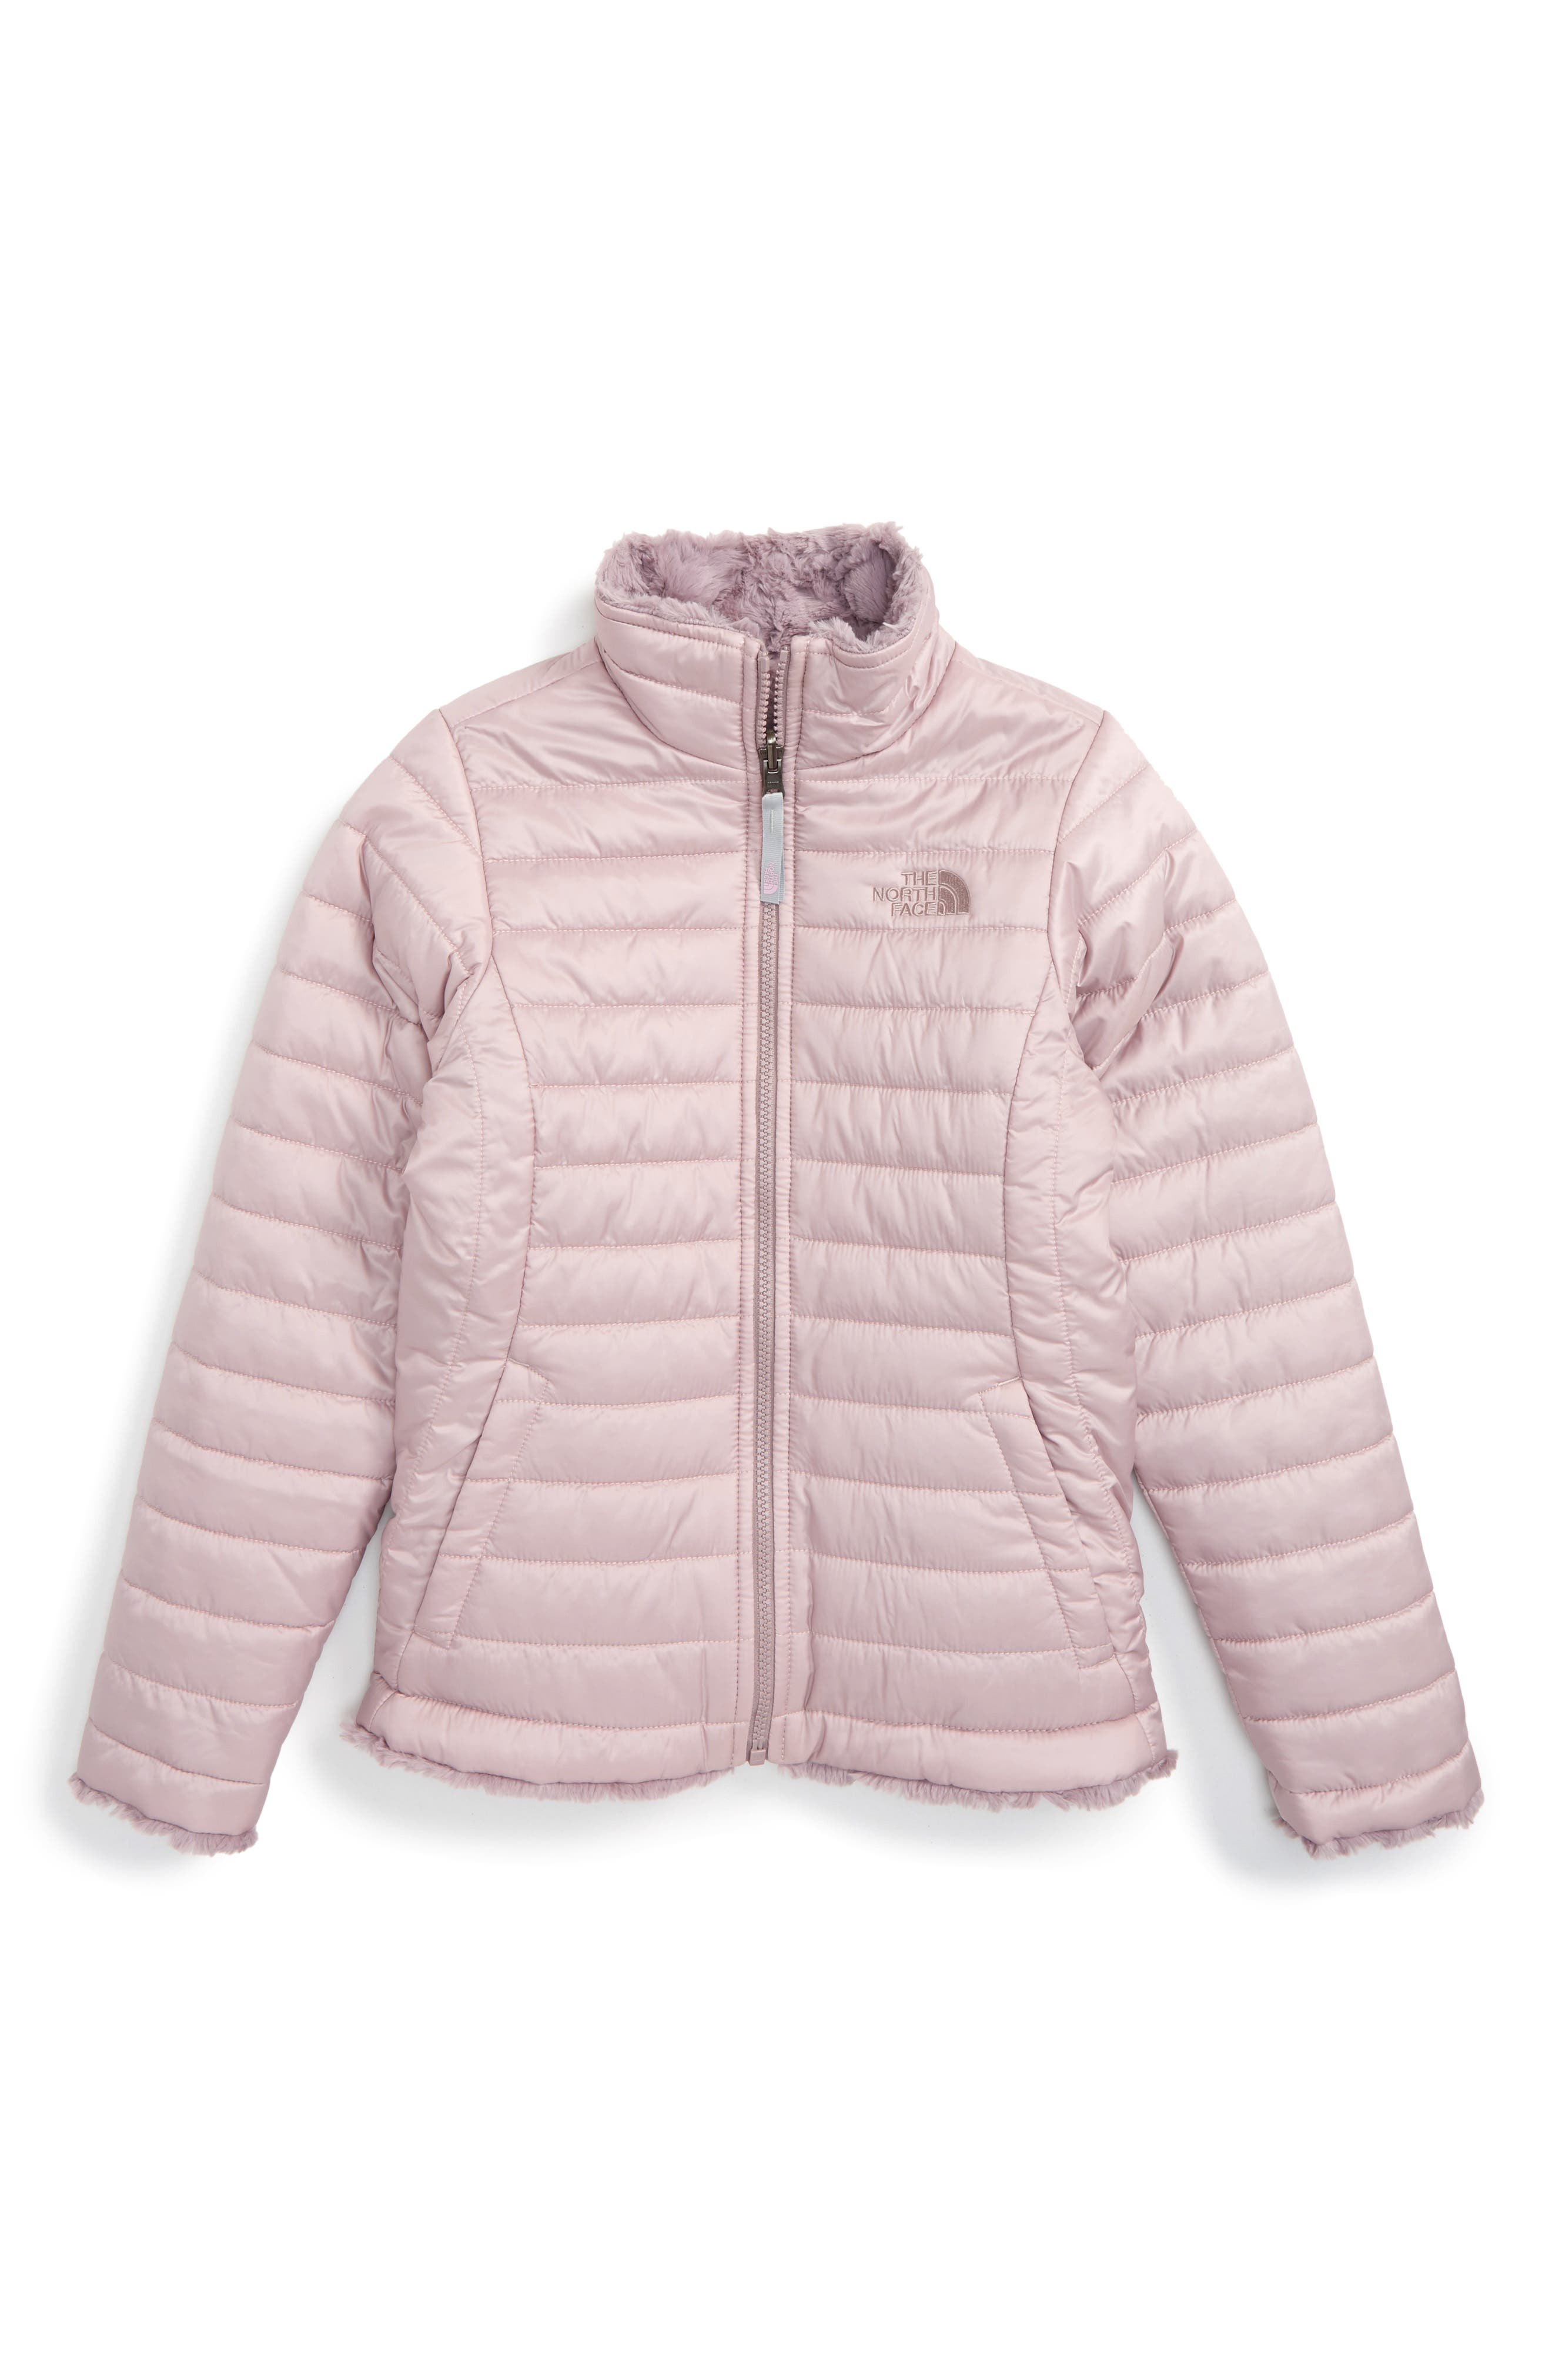 Main Image - The North Face 'Mossbud Swirl' Reversible Water Resistant Jacket (Big Girls)